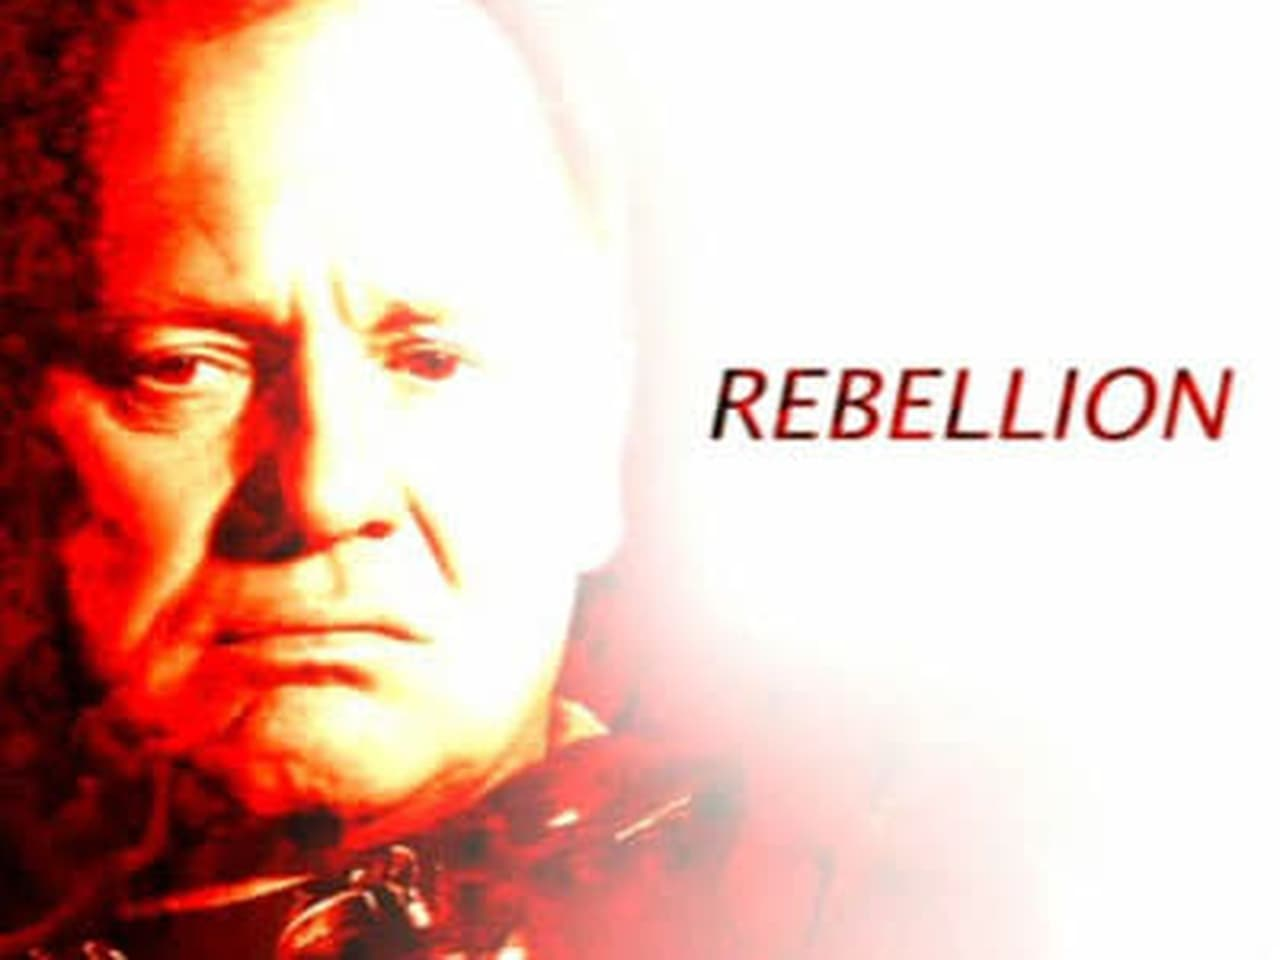 Ancient Rome The Rise and Fall of an Empire Episode: Rebellion